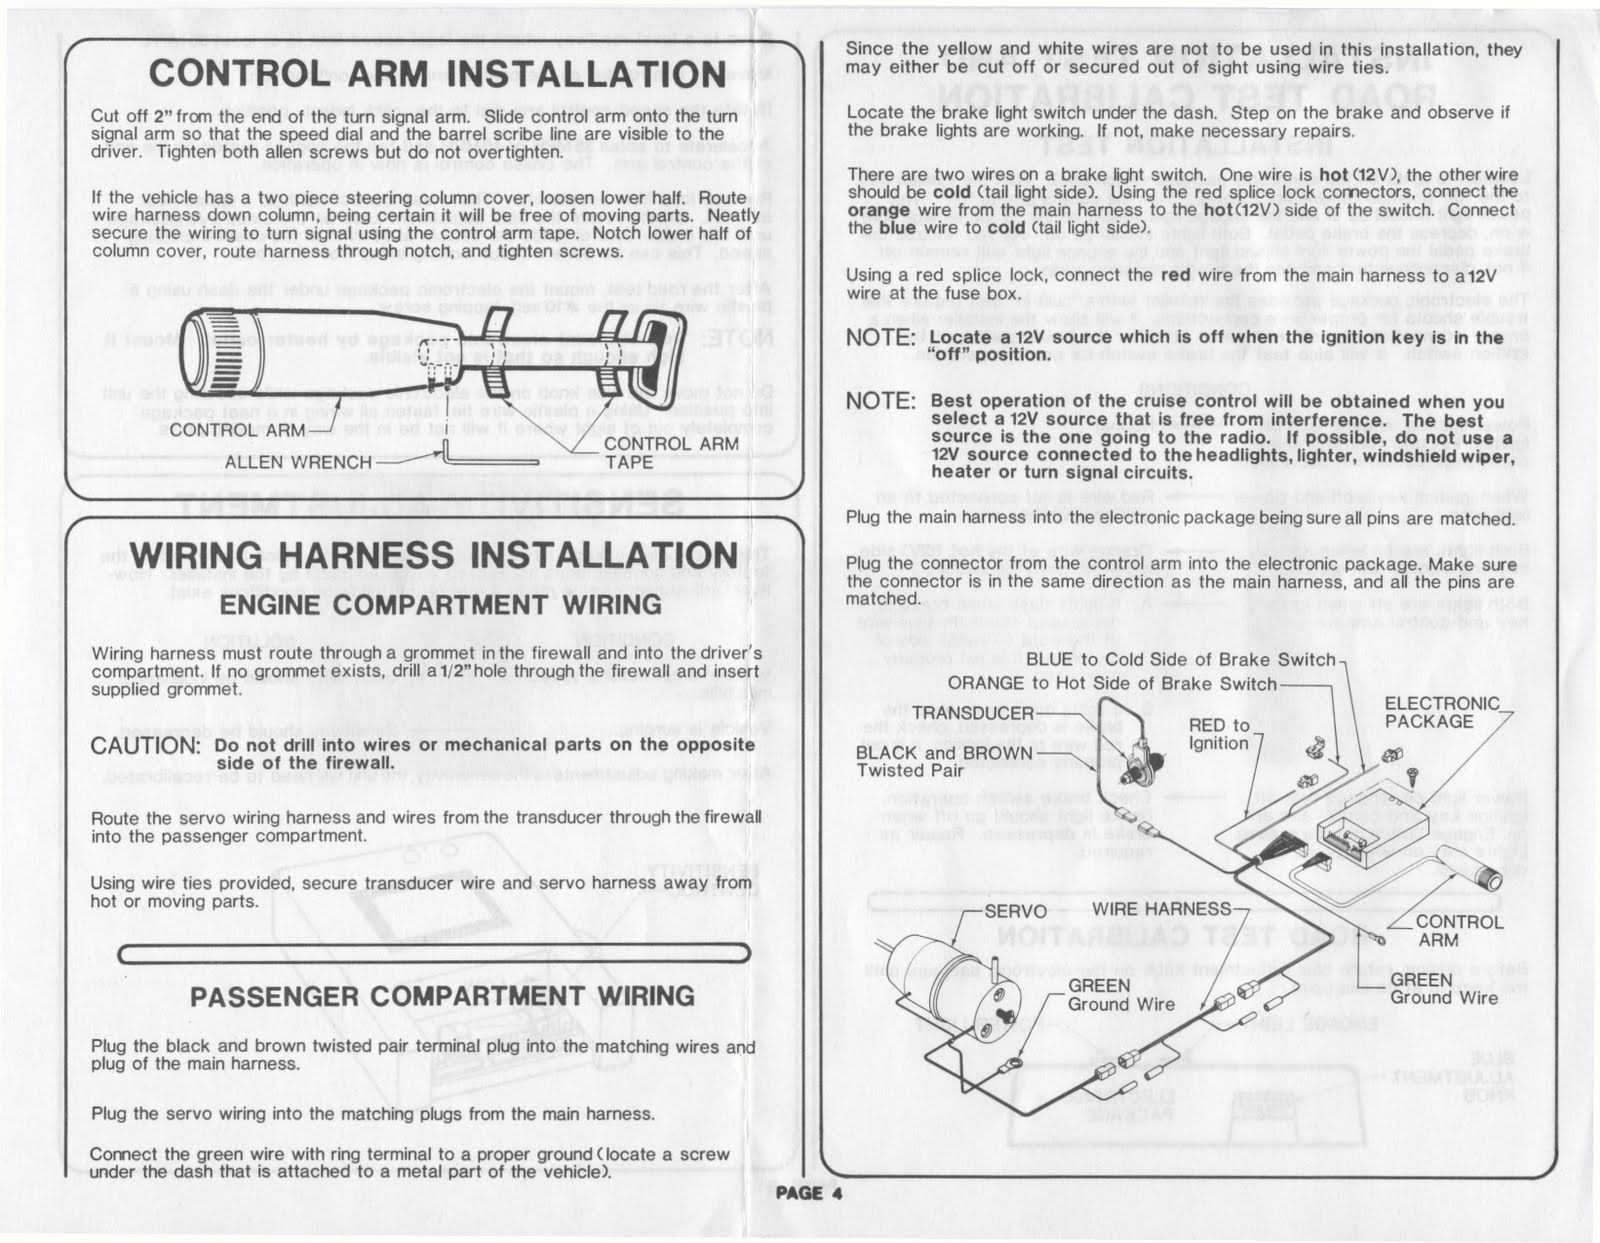 Gm Cruise Control Diagram Wiring Library Chevrolet 1983 Fleetwood Pace Arrow Owners Manuals 83 Electronic Maf Sensor